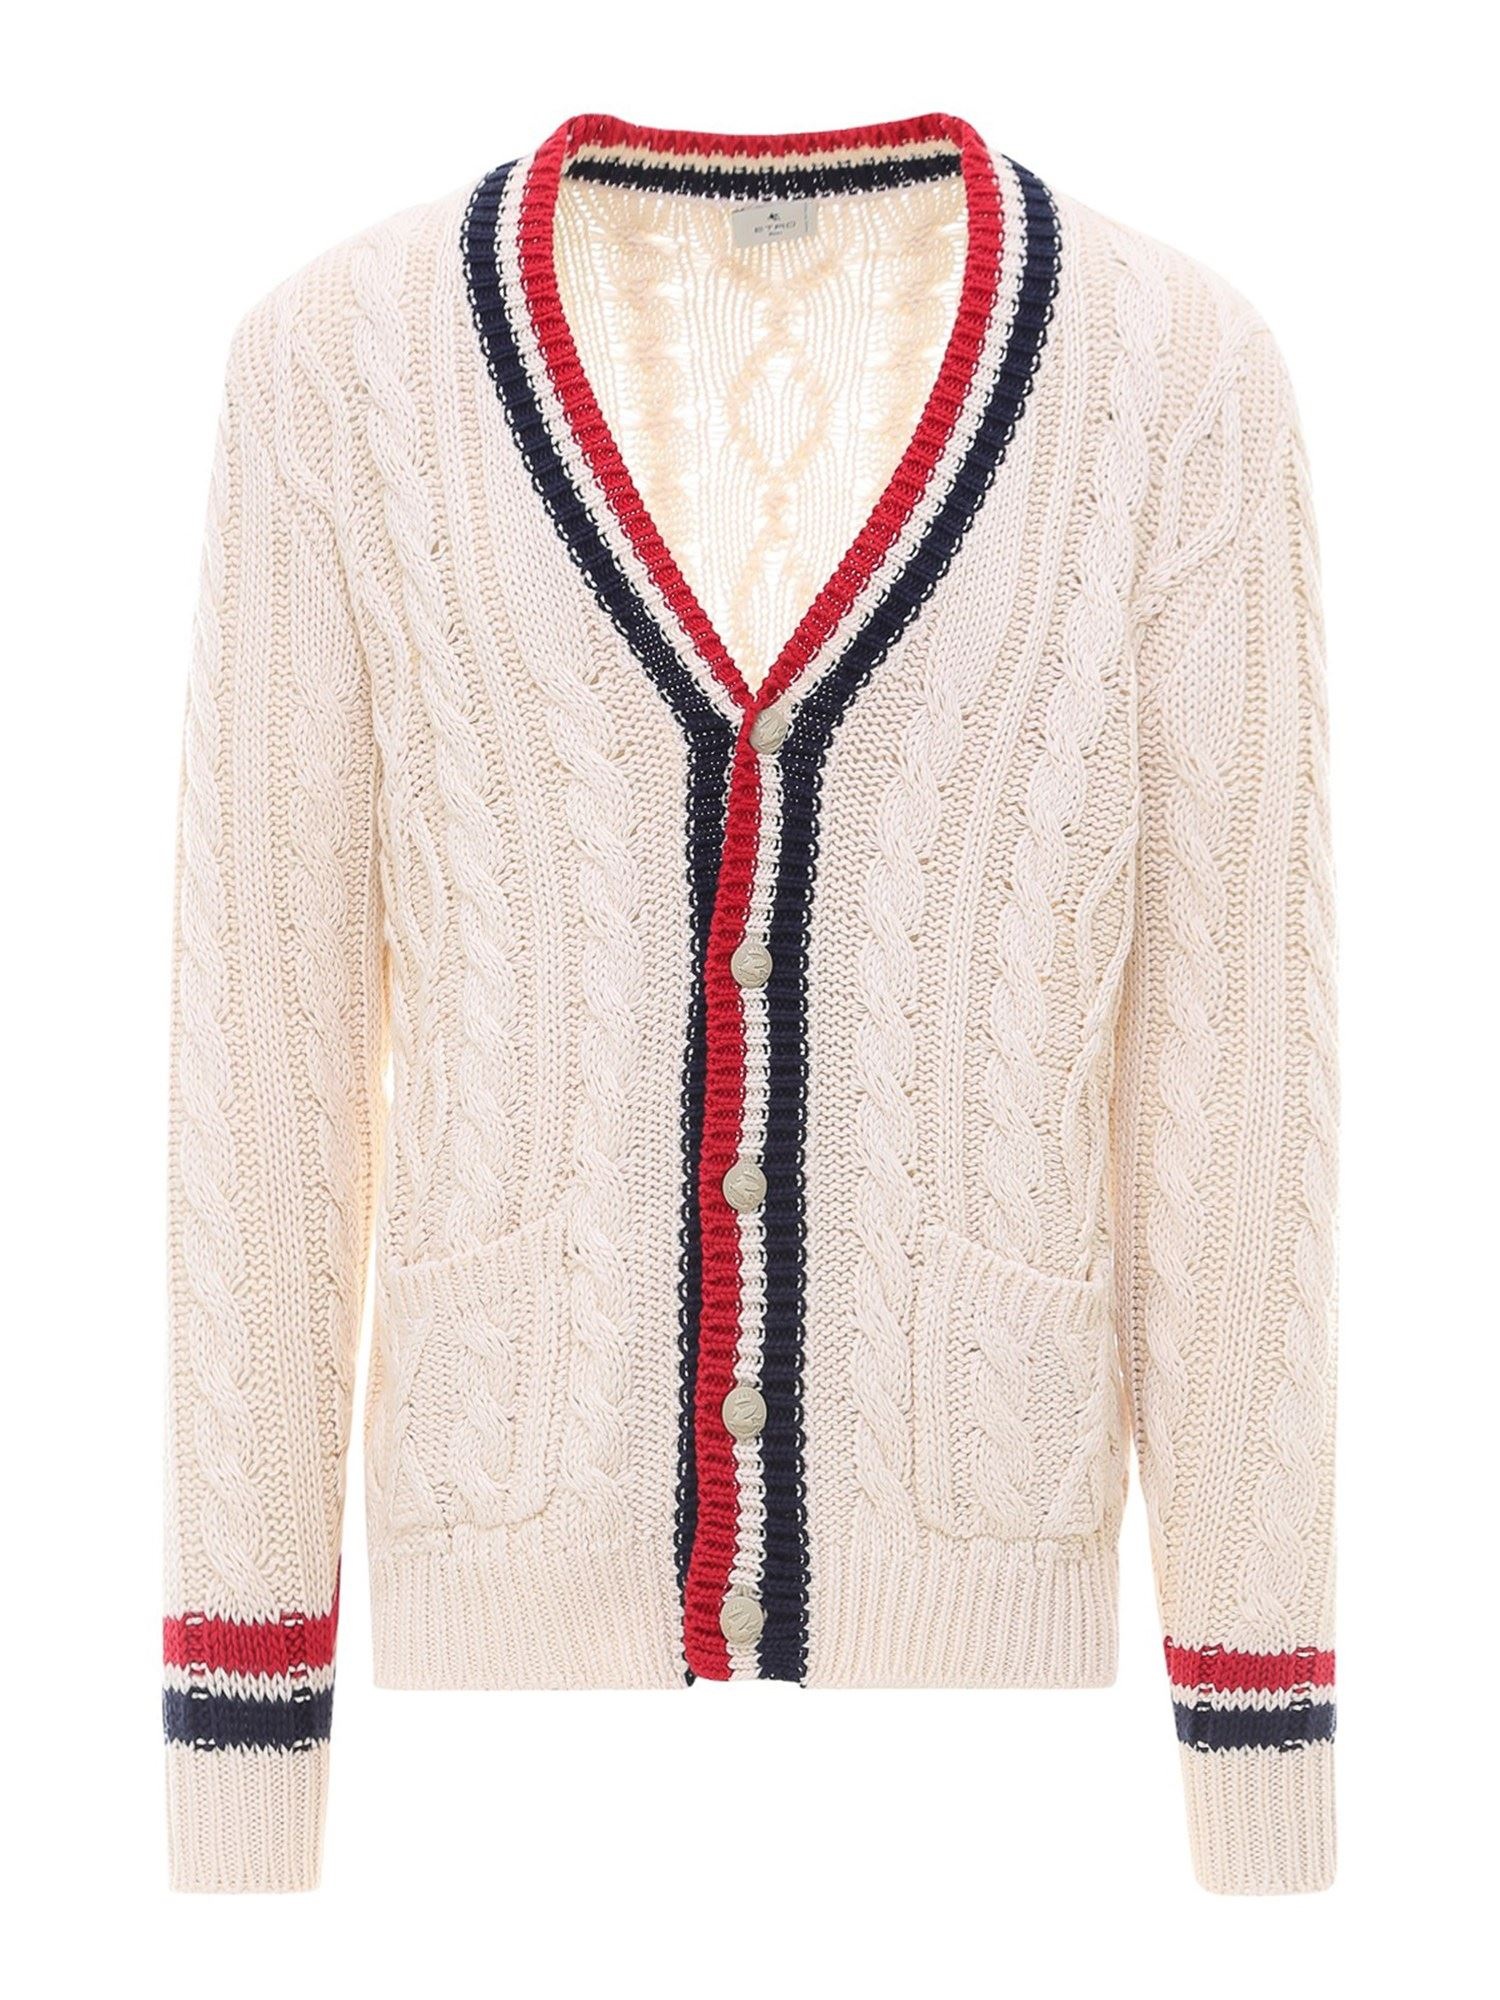 Etro CABLE KNIT COTTON CARDIGAN IN BEIGE